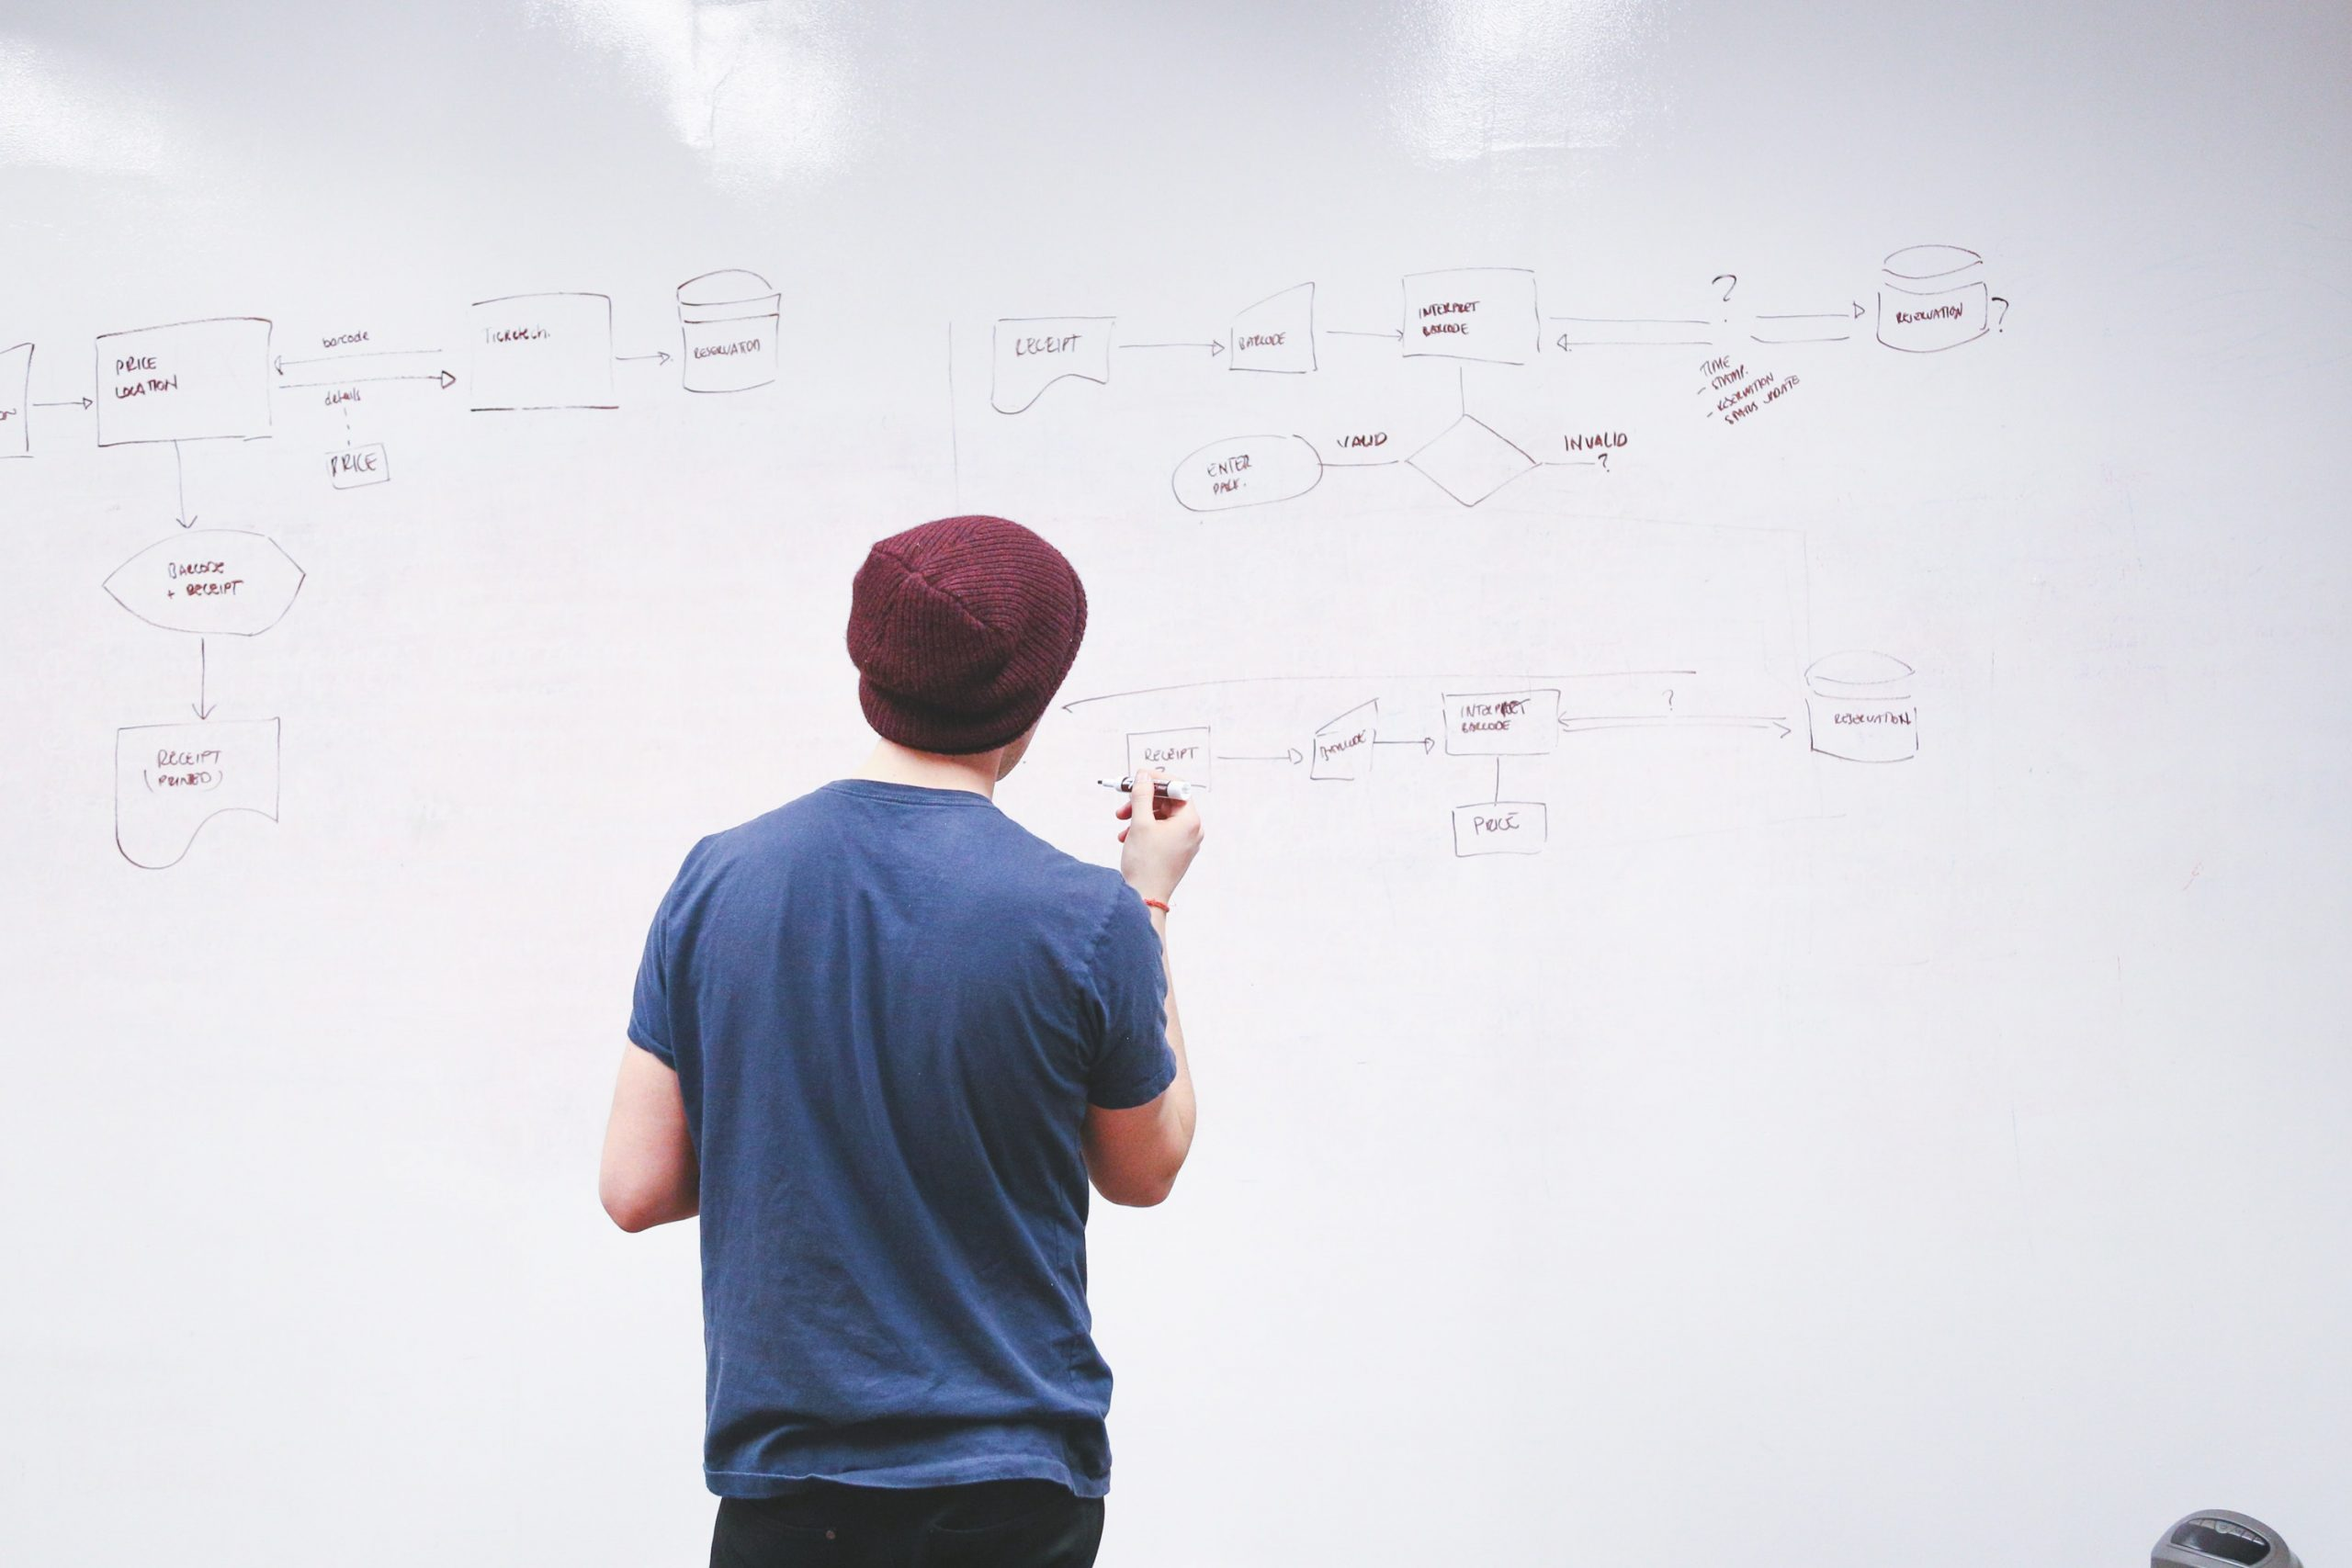 Post 3 – ideas-whiteboard-person-working-7369-Foto de Startup Stock Photos no Pexels